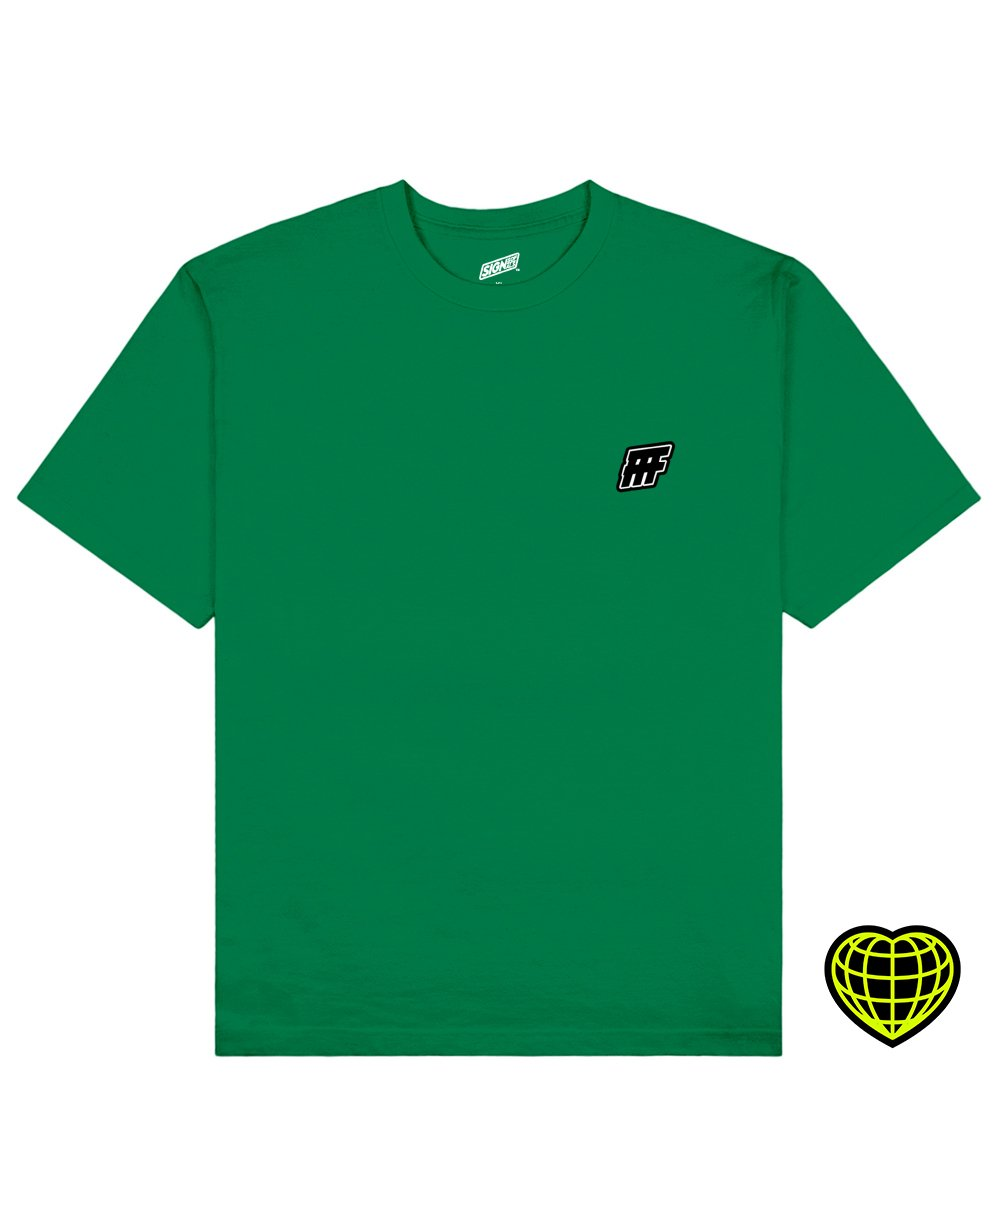 FFF Print T-shirt in Green - T-Shirts - Signs of Signals - BRANMA